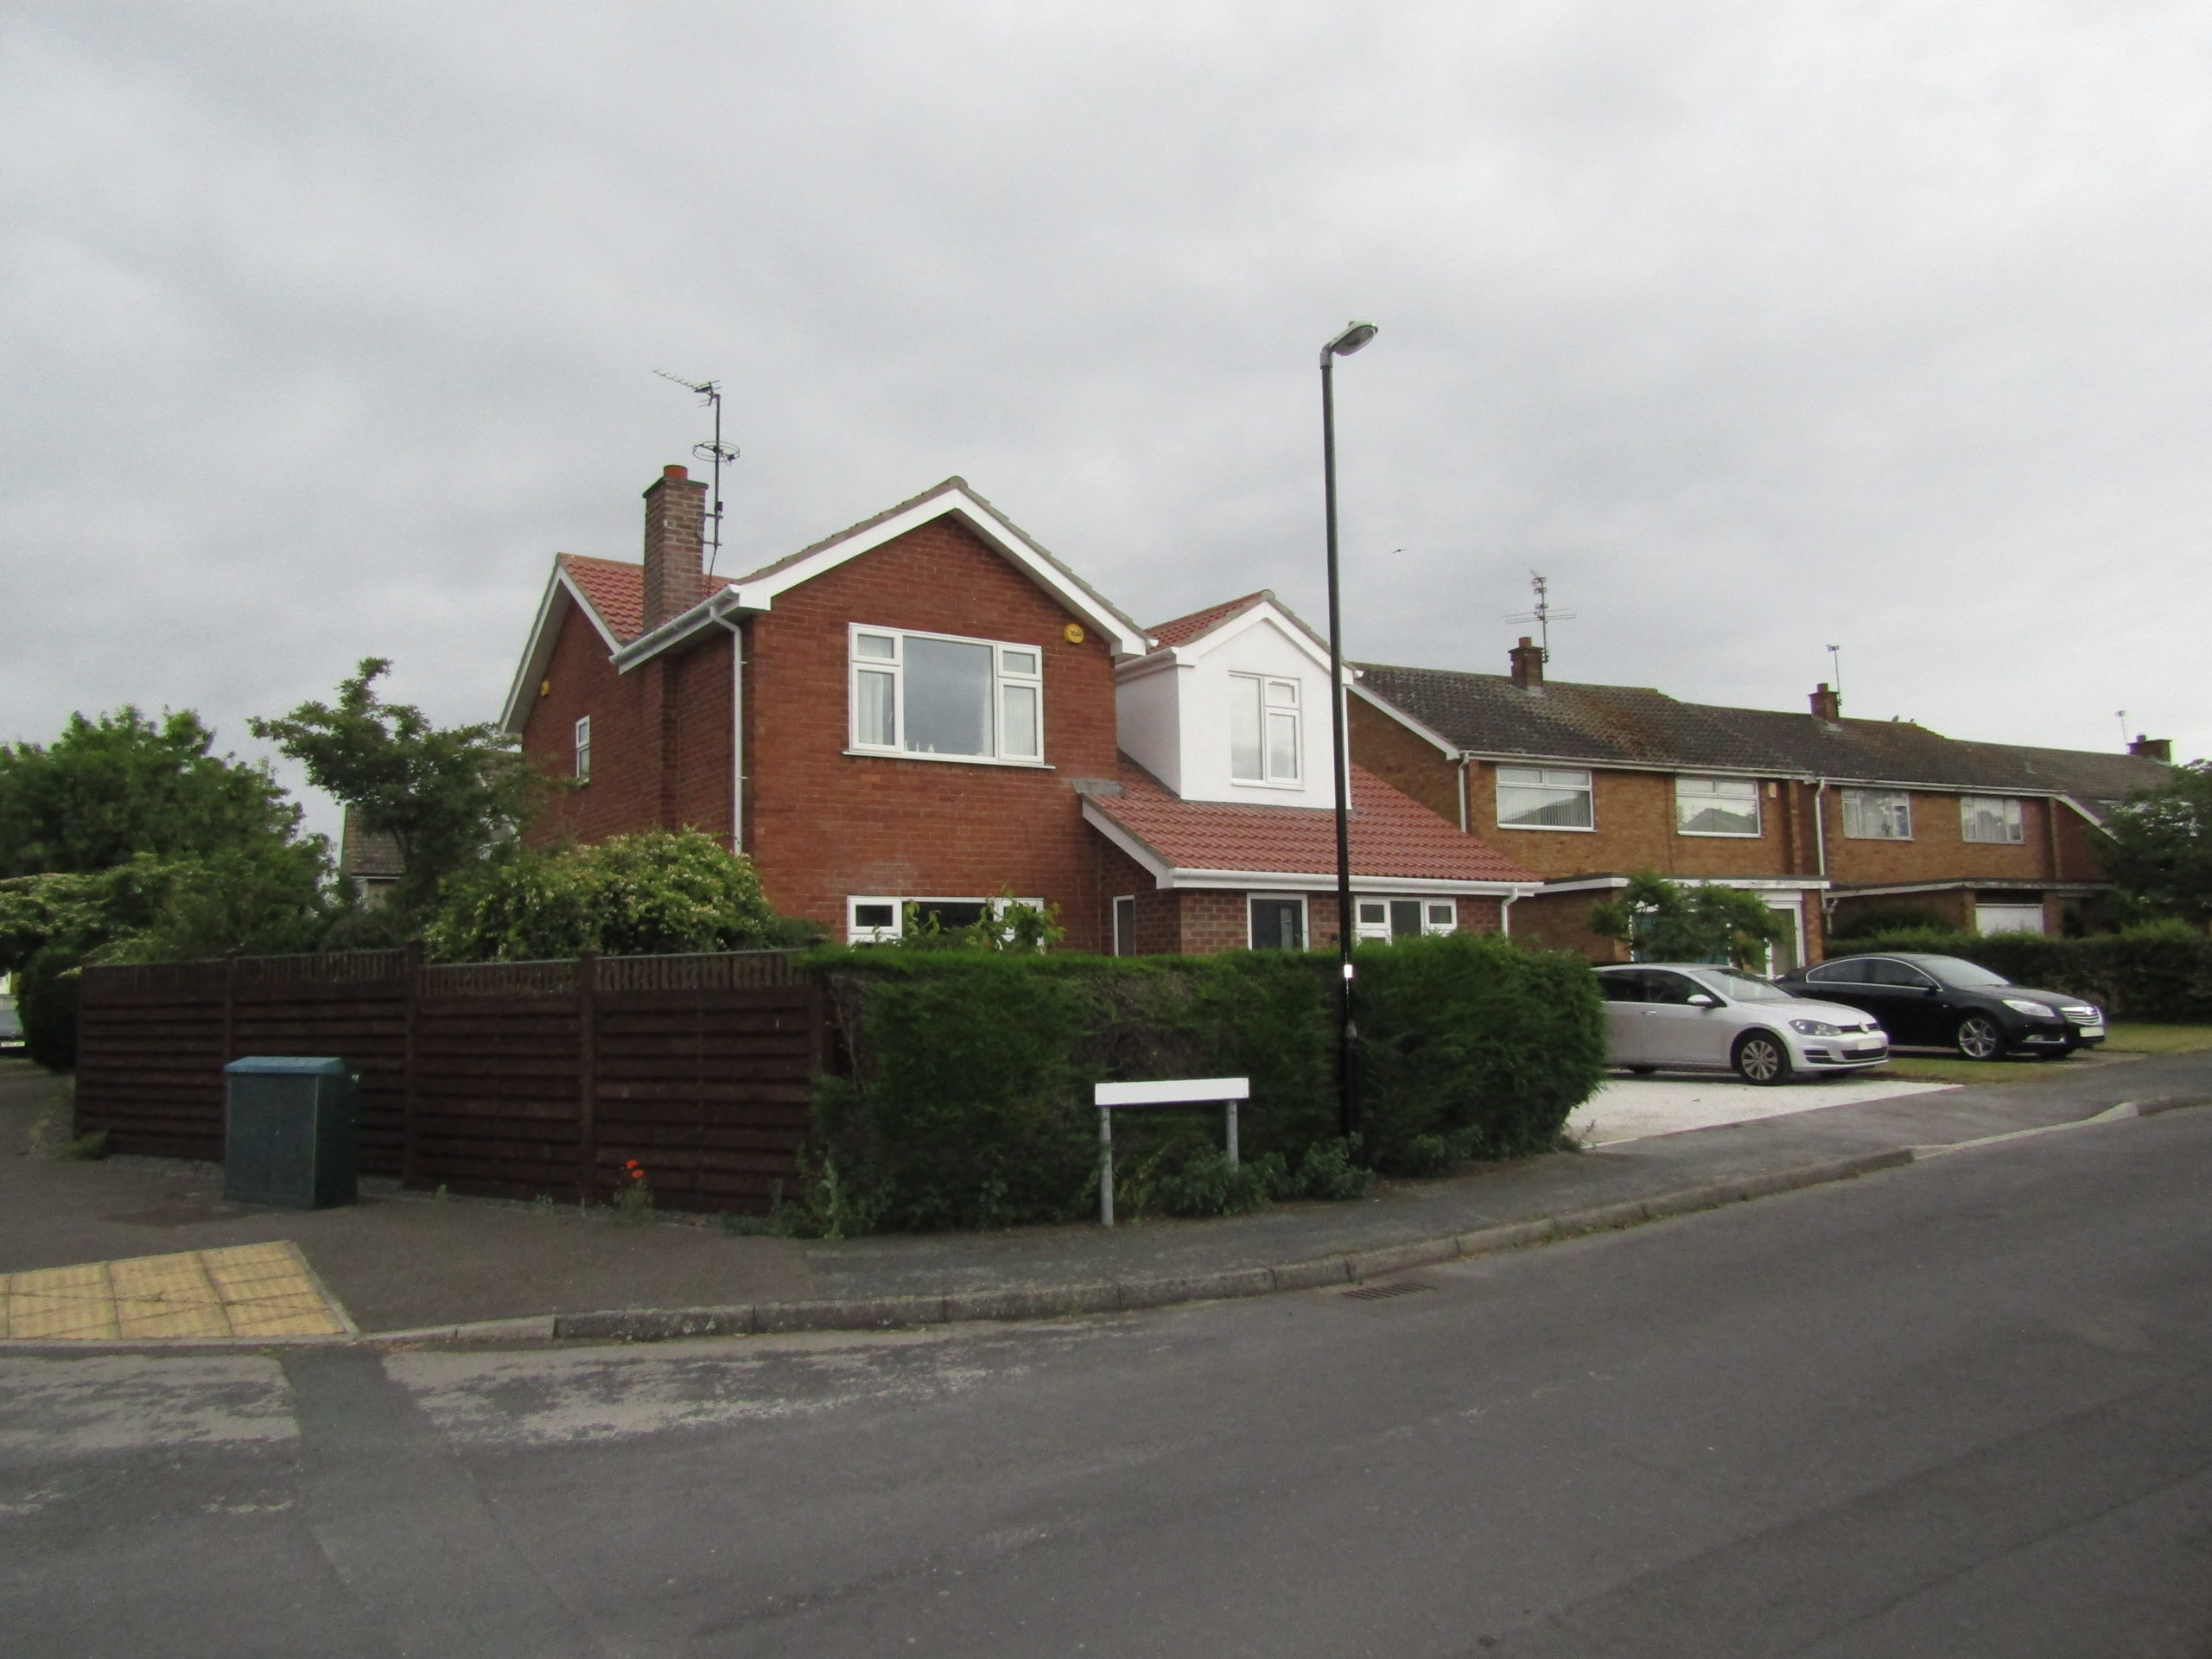 Street front view of house extension and loft conversion